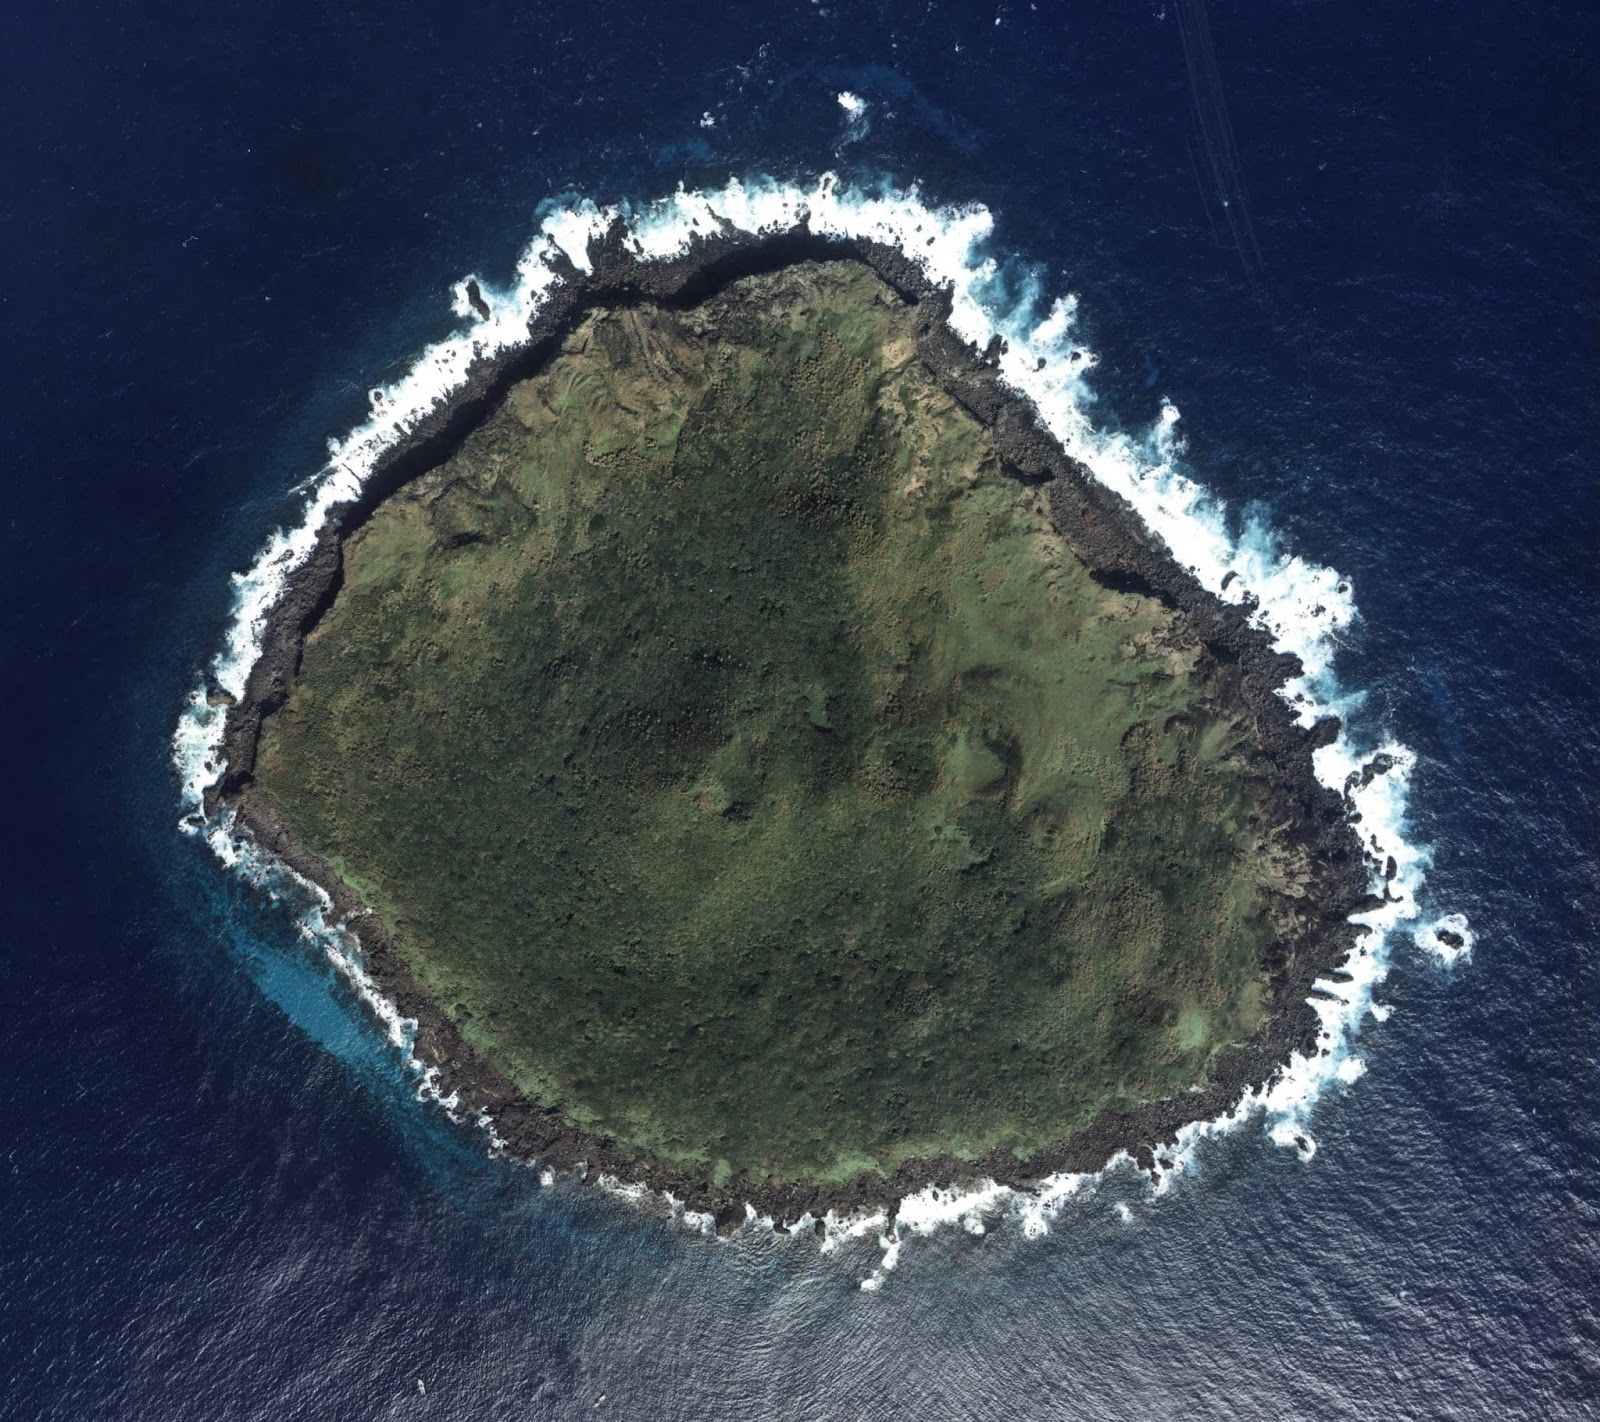 Aerial photo of Kuba-shima (久場島)/Huángwěiyǔ (黃尾嶼/黄尾屿), one of the Senkaku/Diaoyu Islands disputed between Japan, China, and Taiwan